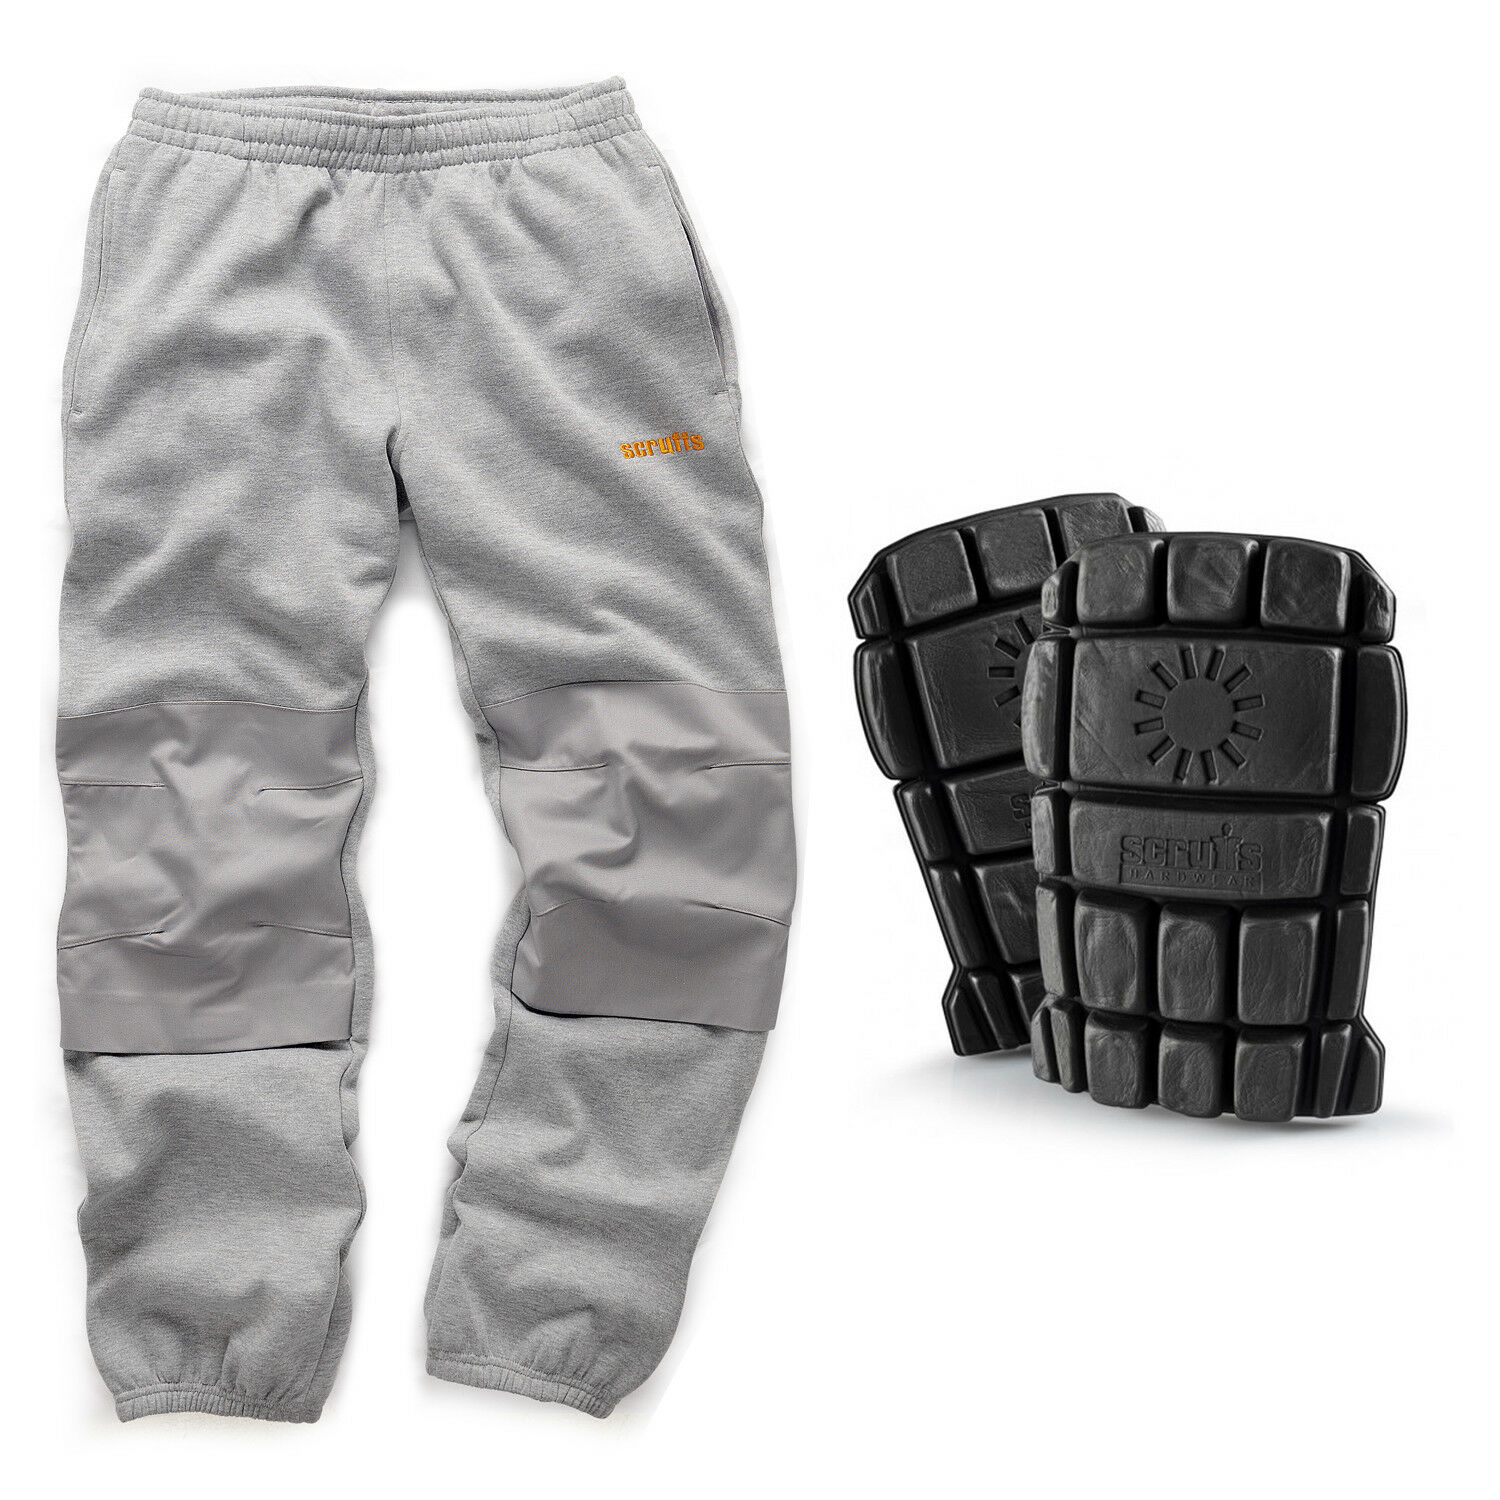 Scruffs Fleece Pants Light Grey Trousers with Scruffs Hardwearing Knee Pads